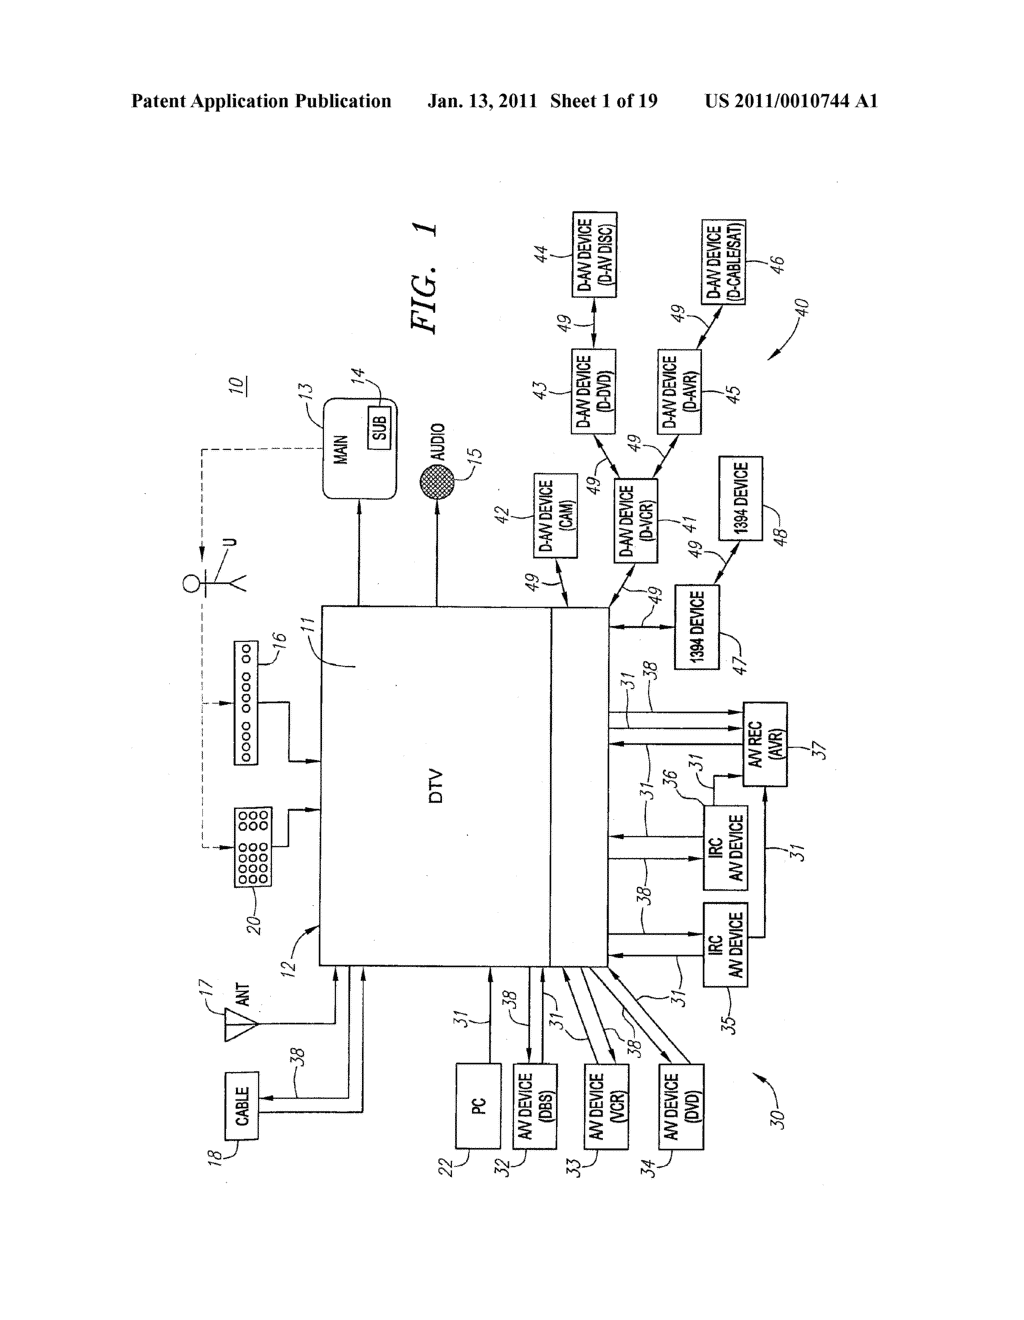 home theater network diagram hotpoint washing machine parts control system and user interface for schematic image 02